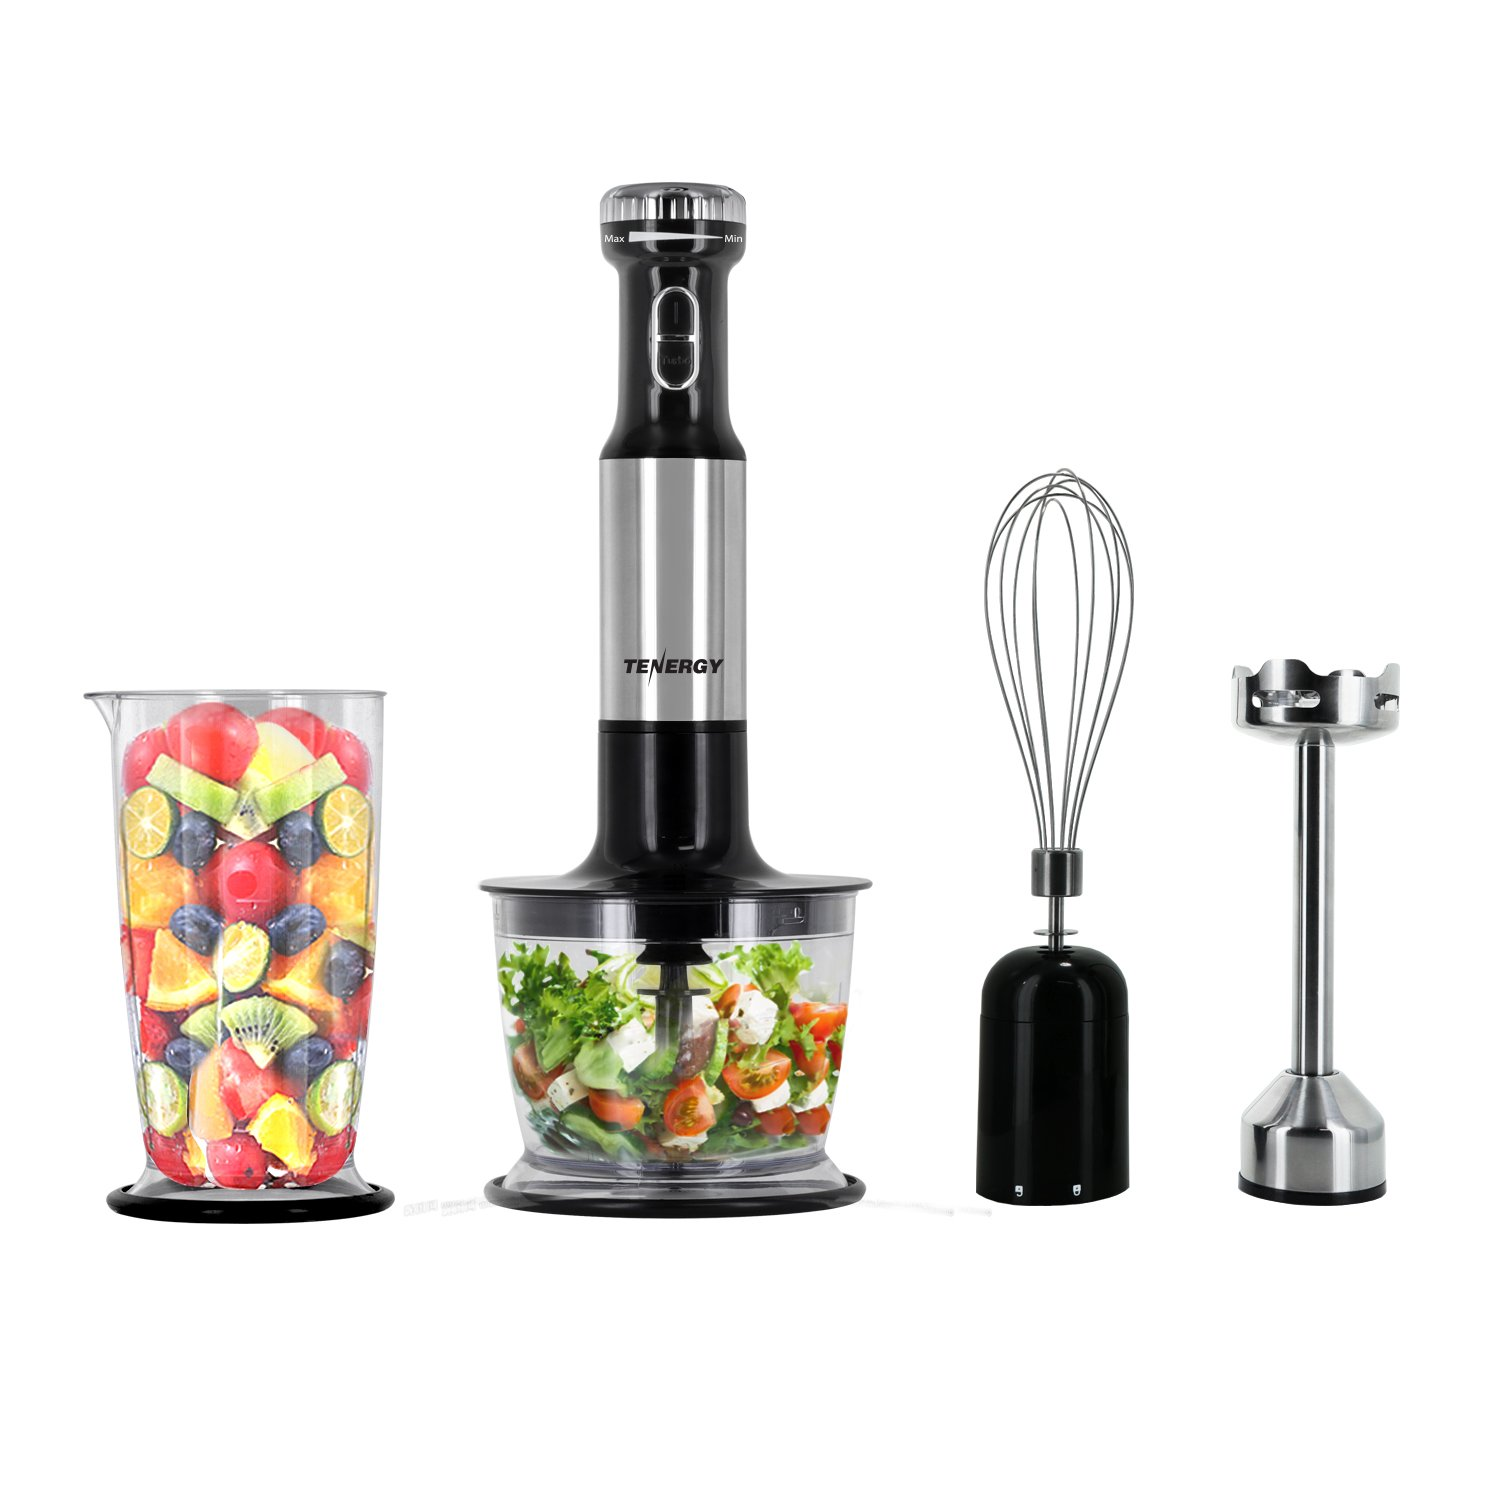 Tenergy Immersion Blender, 200W Stepless Speed Control Hand Blender Set with Stainless Steel Hand Mixer, Chopper, Whisk, Beaker Attachment for Soup, Sauce, Baby Food, Purée and Emulsify by Tenergy